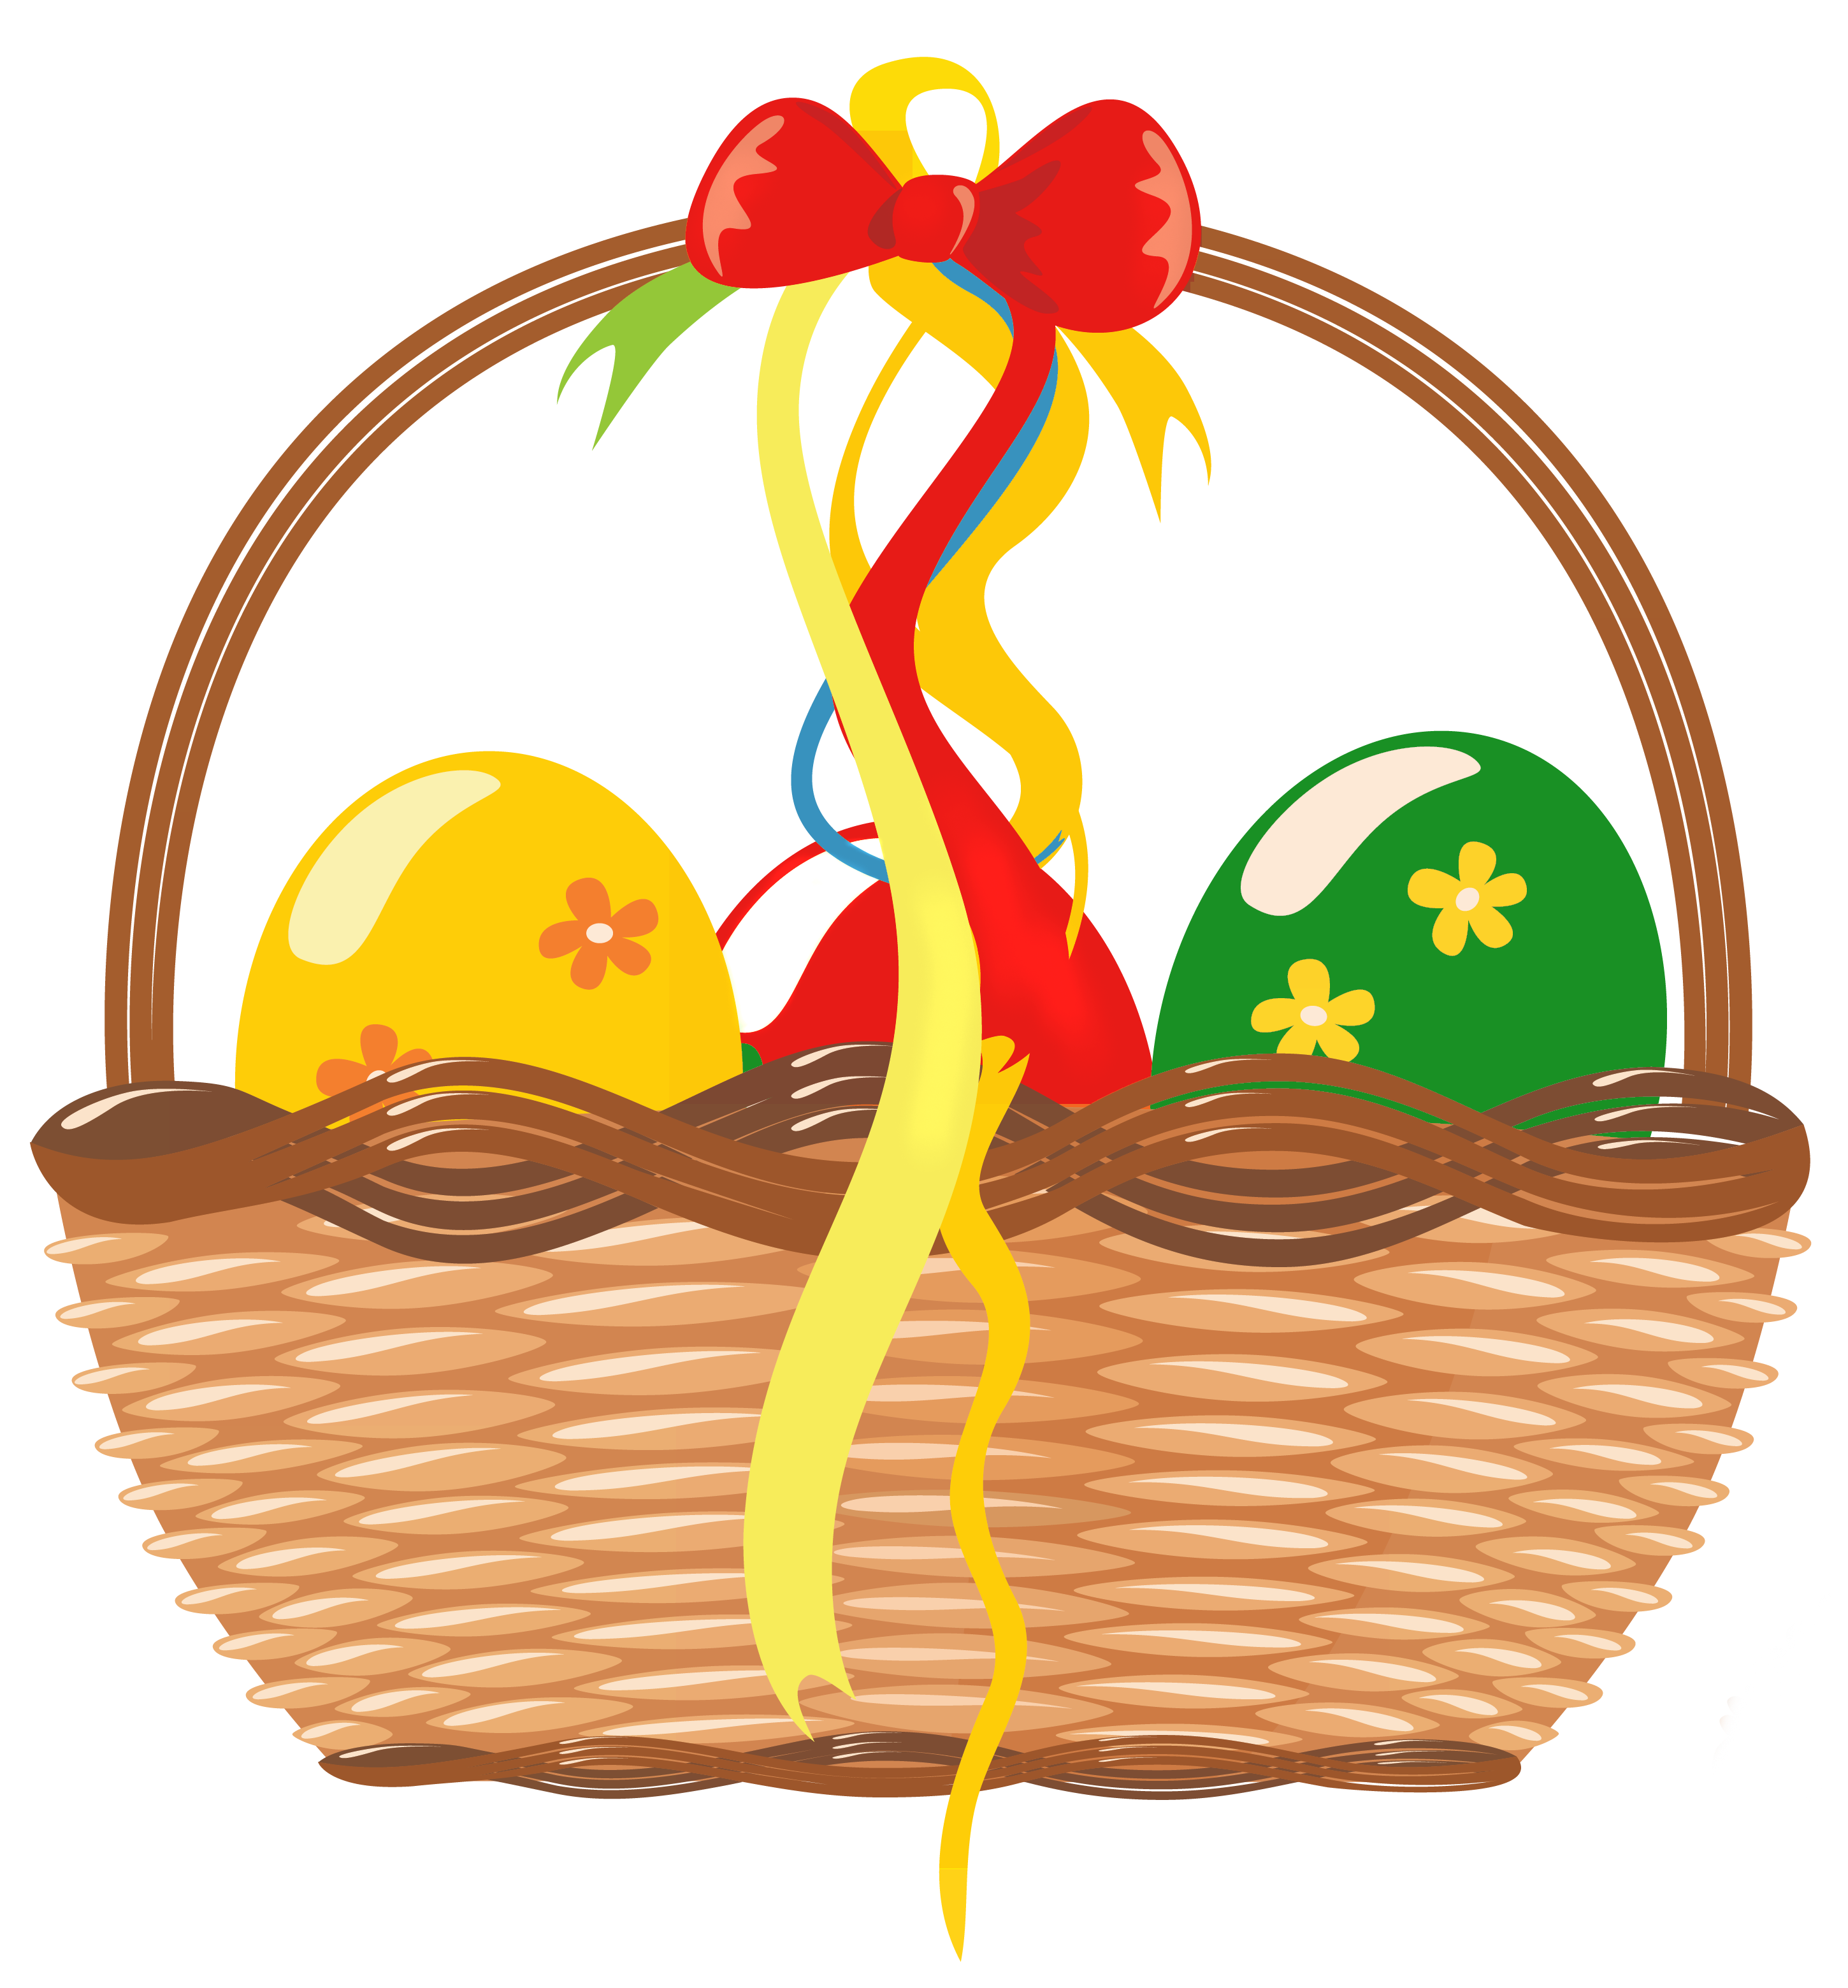 2900x3119 Easter Basket With Eggs Png Clipart Pictureu200b Gallery